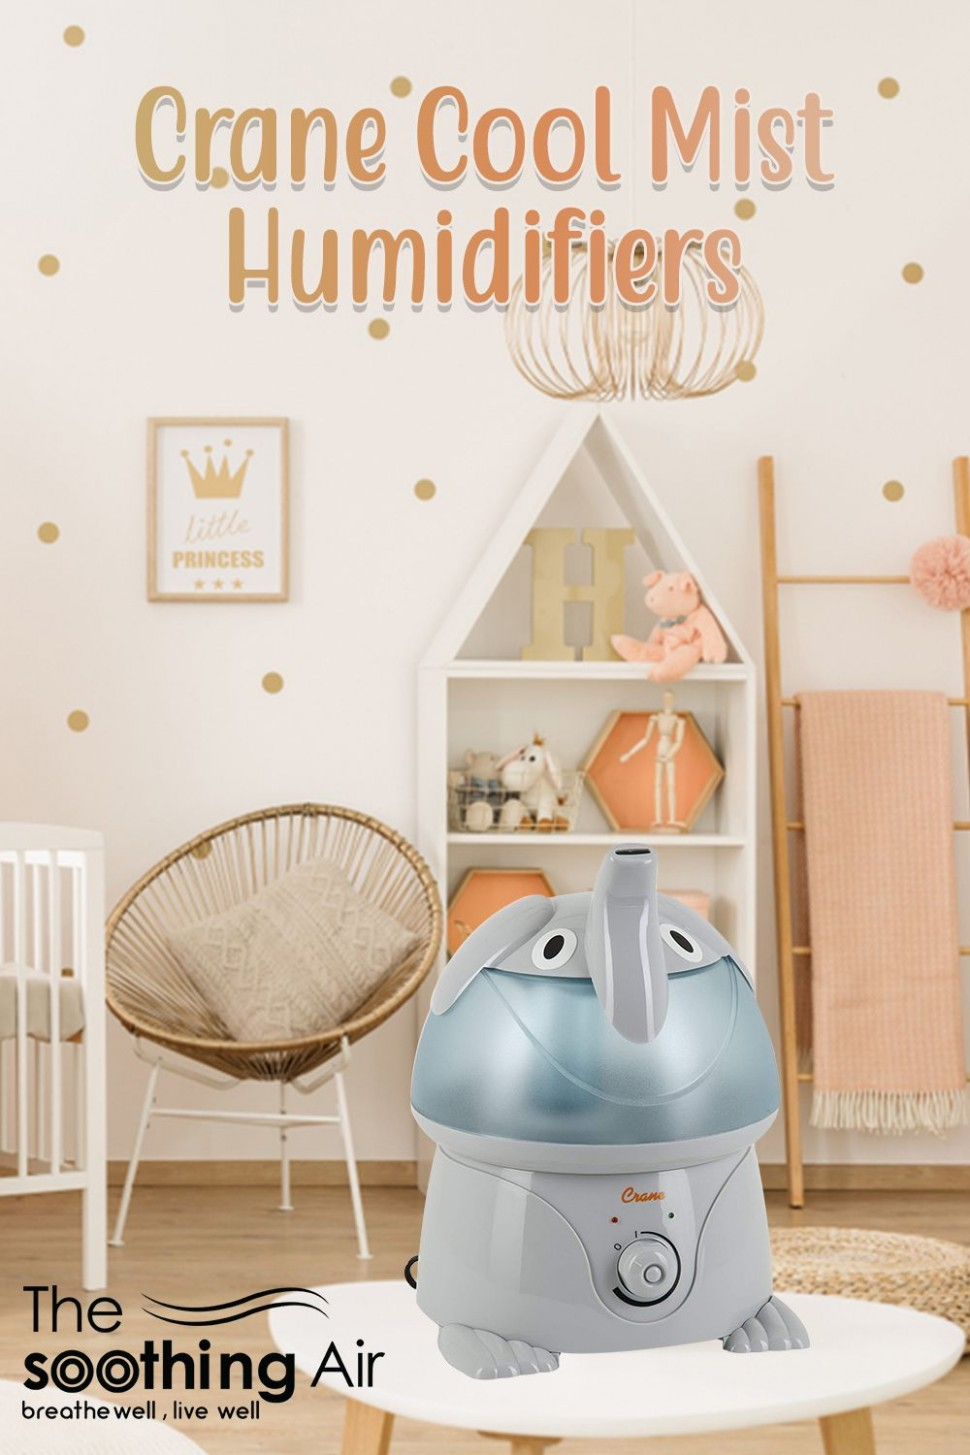 Top 12 Baby Room Humidifiers (April 12): Reviews & Buyers Guide  - Baby Room Reviews